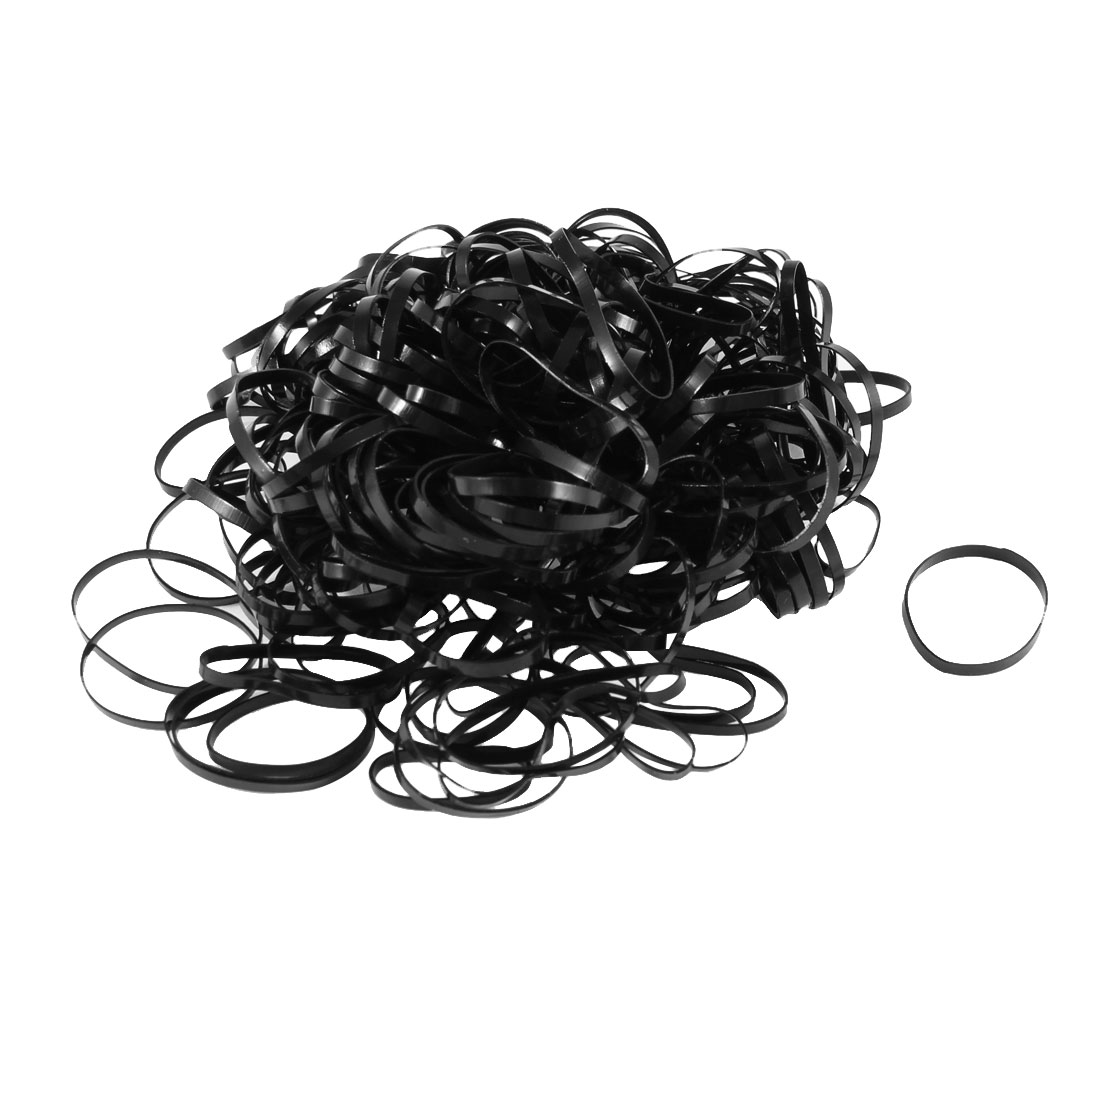 Unique Bargains Lady Hair Decoration 255 Pcs Black Stretchy Rubber Ties Hair Bands